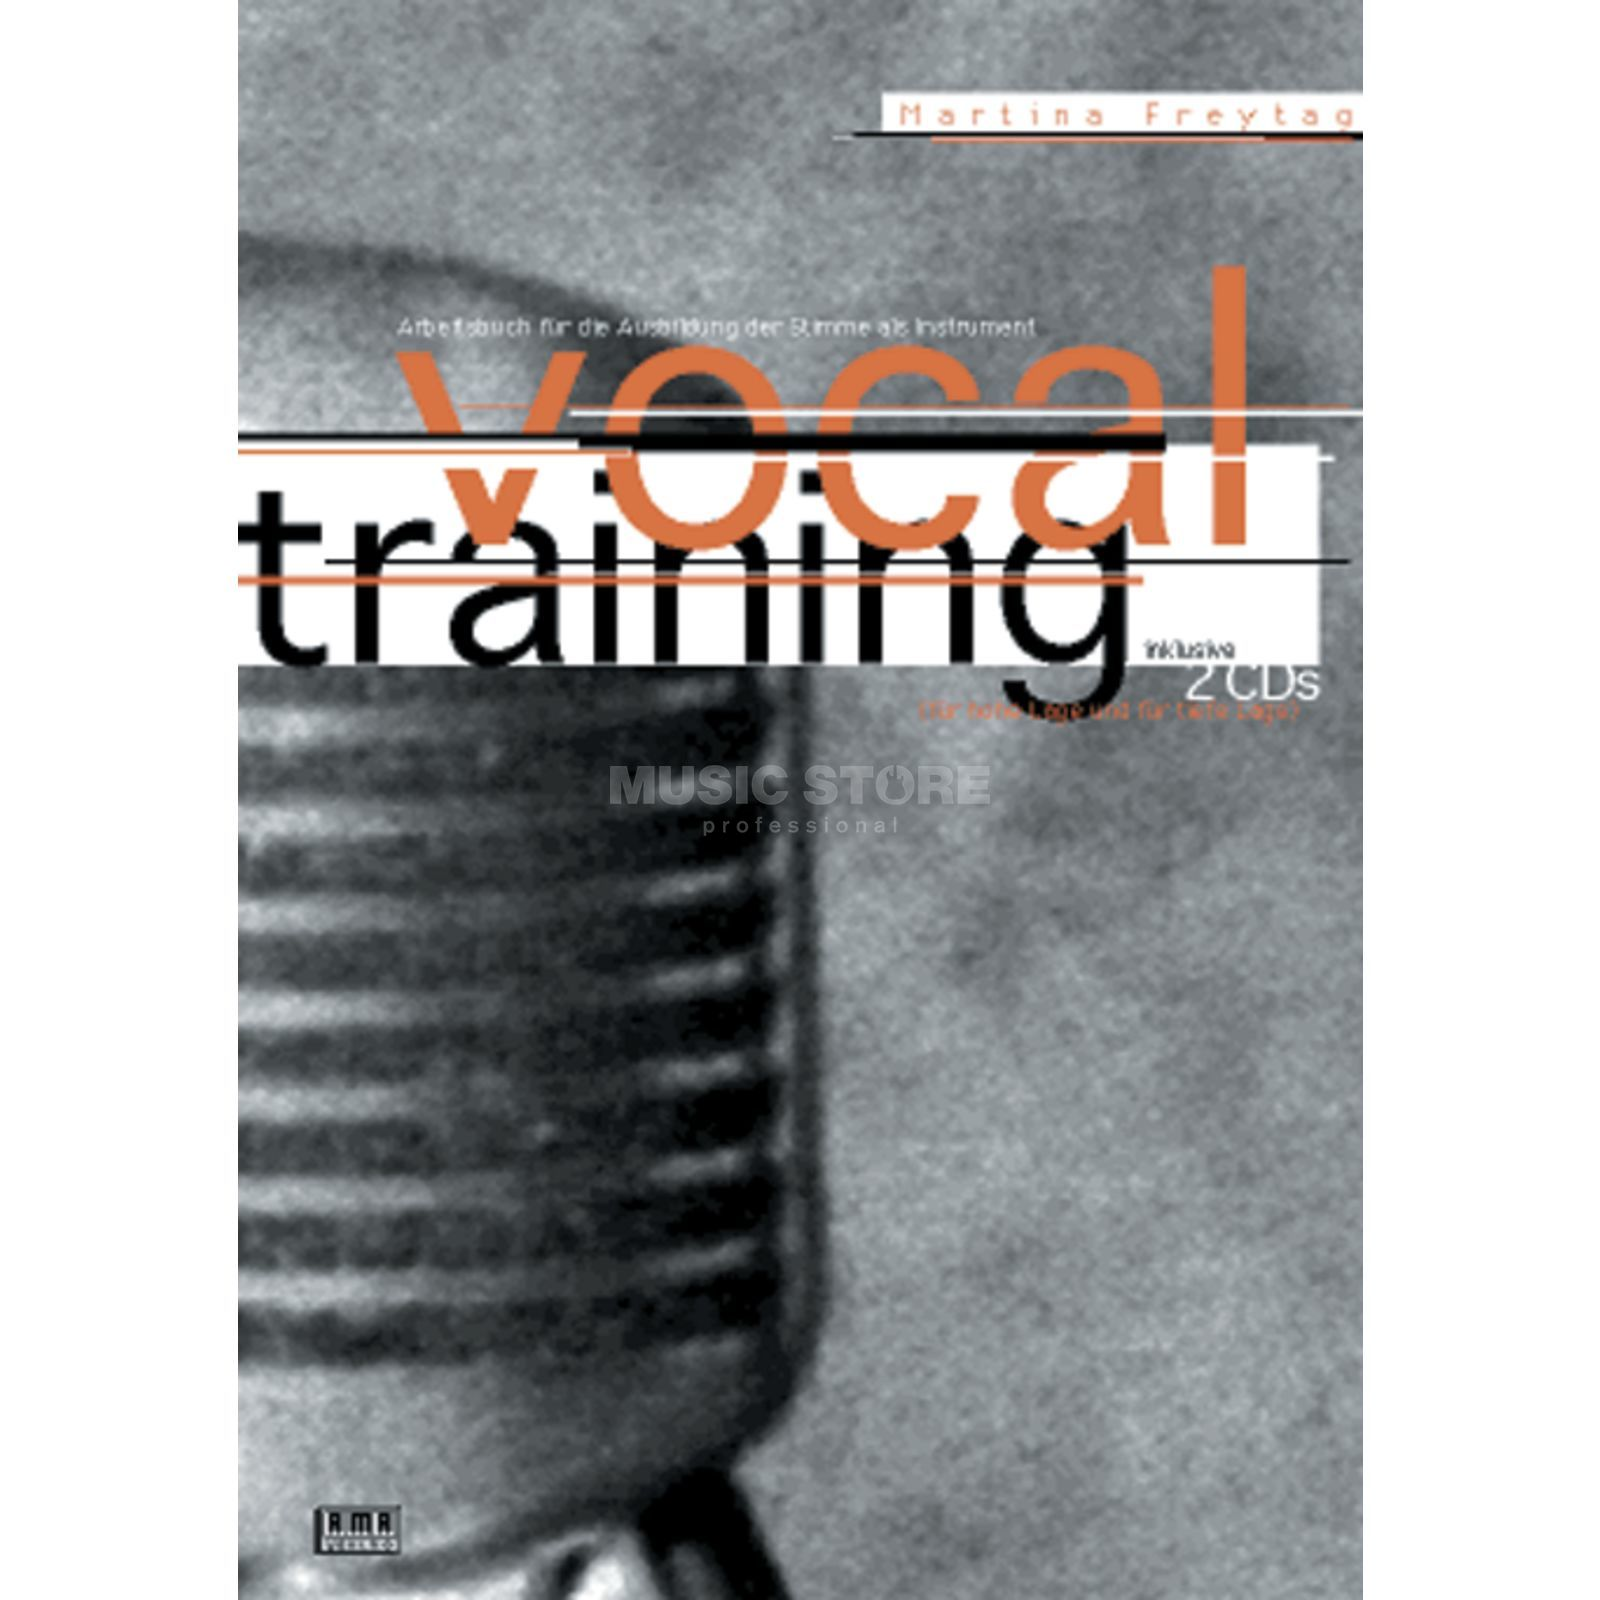 AMA Verlag Vocal Training Martina Freytag,inkl. 2 CDs Produktbild